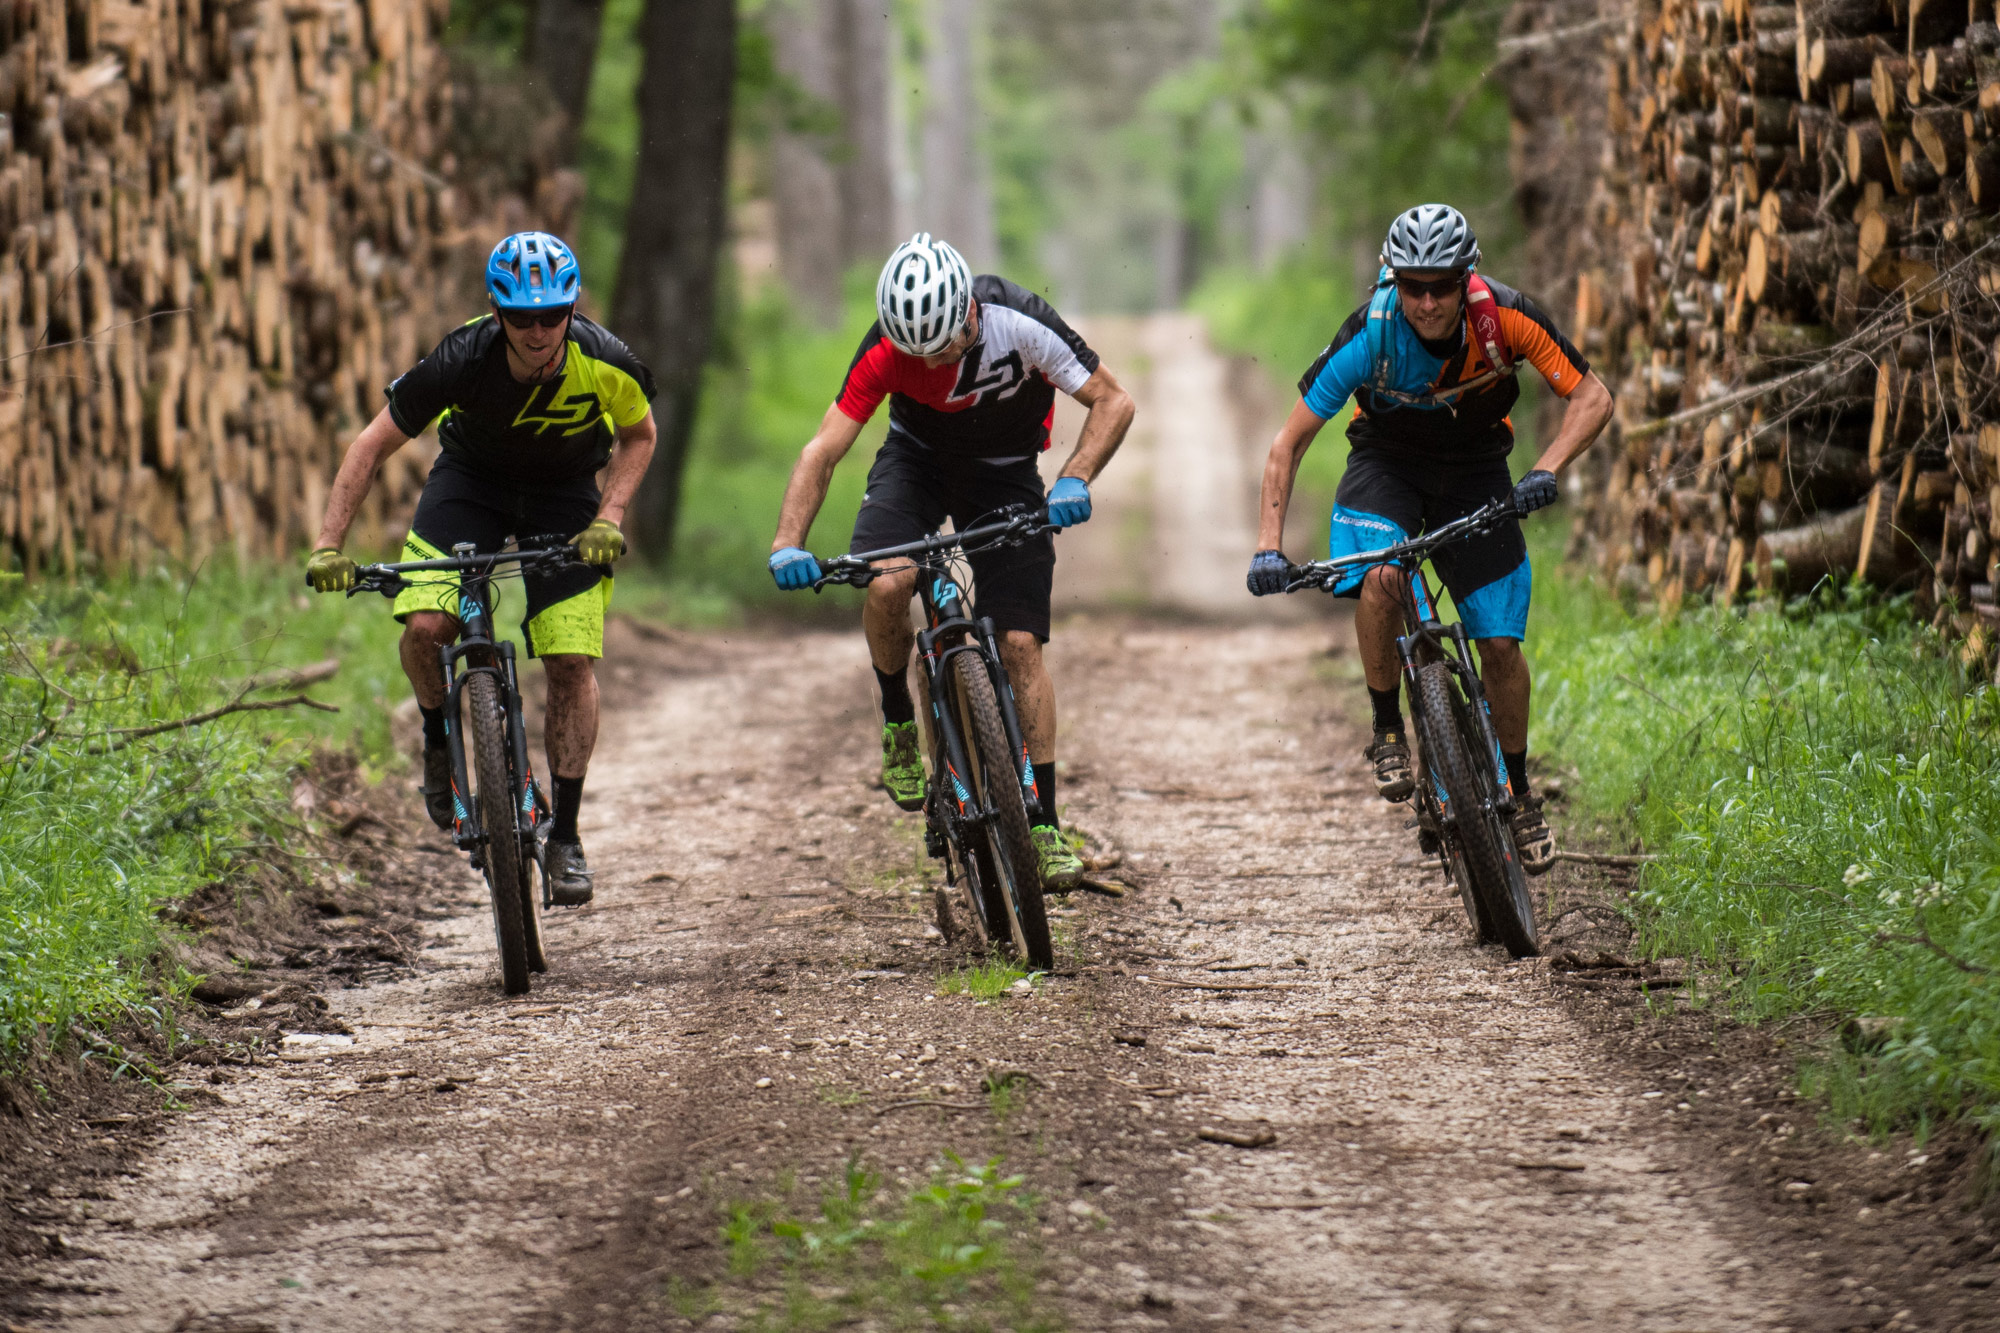 First Ride Lapierre Reworks Cross Country With New Xr Full